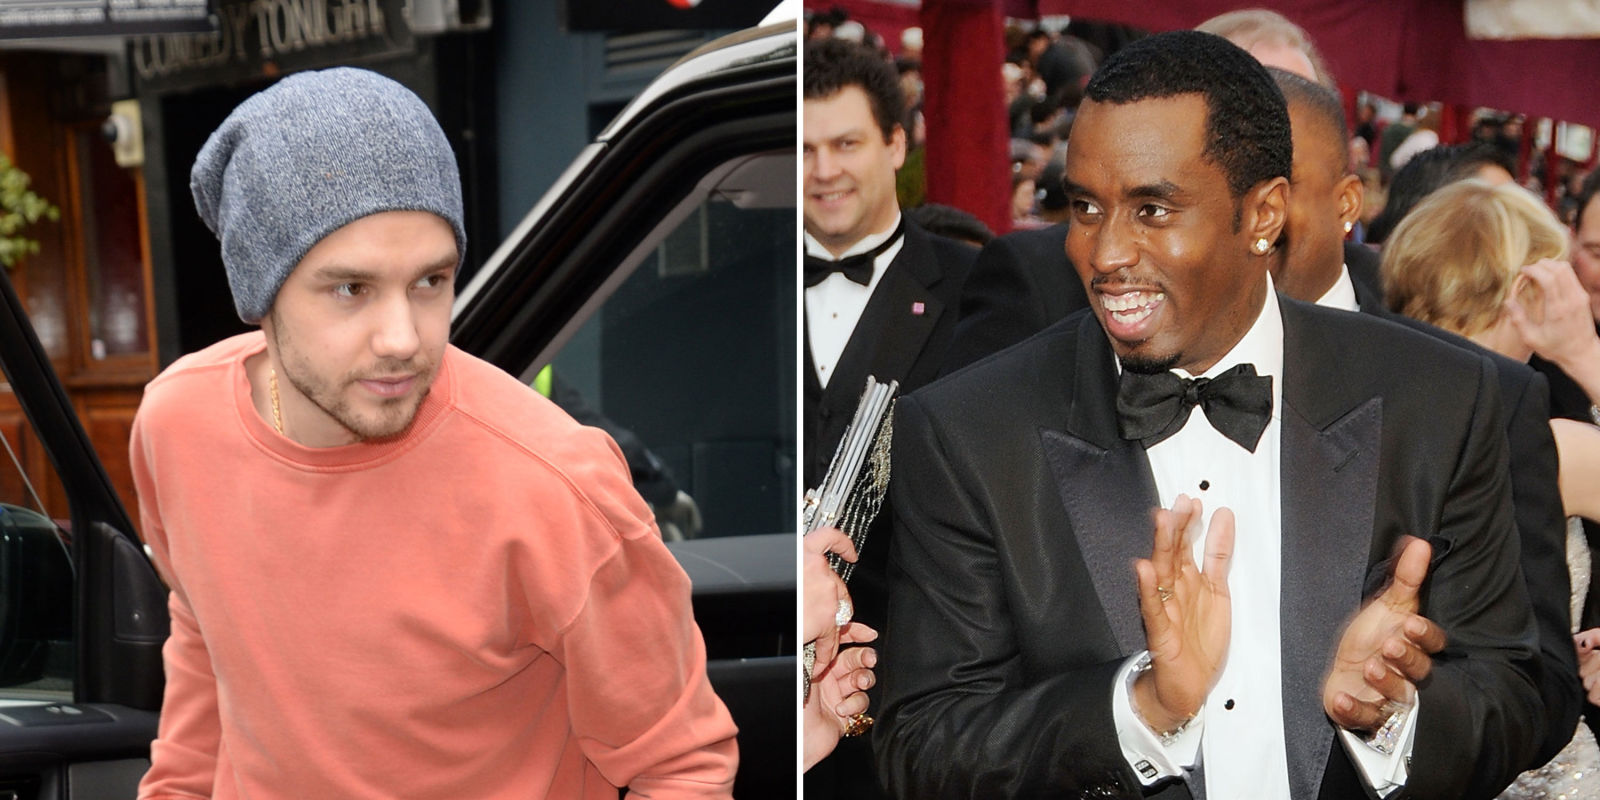 P Diddy laughed in Liam Payne's face when he met him